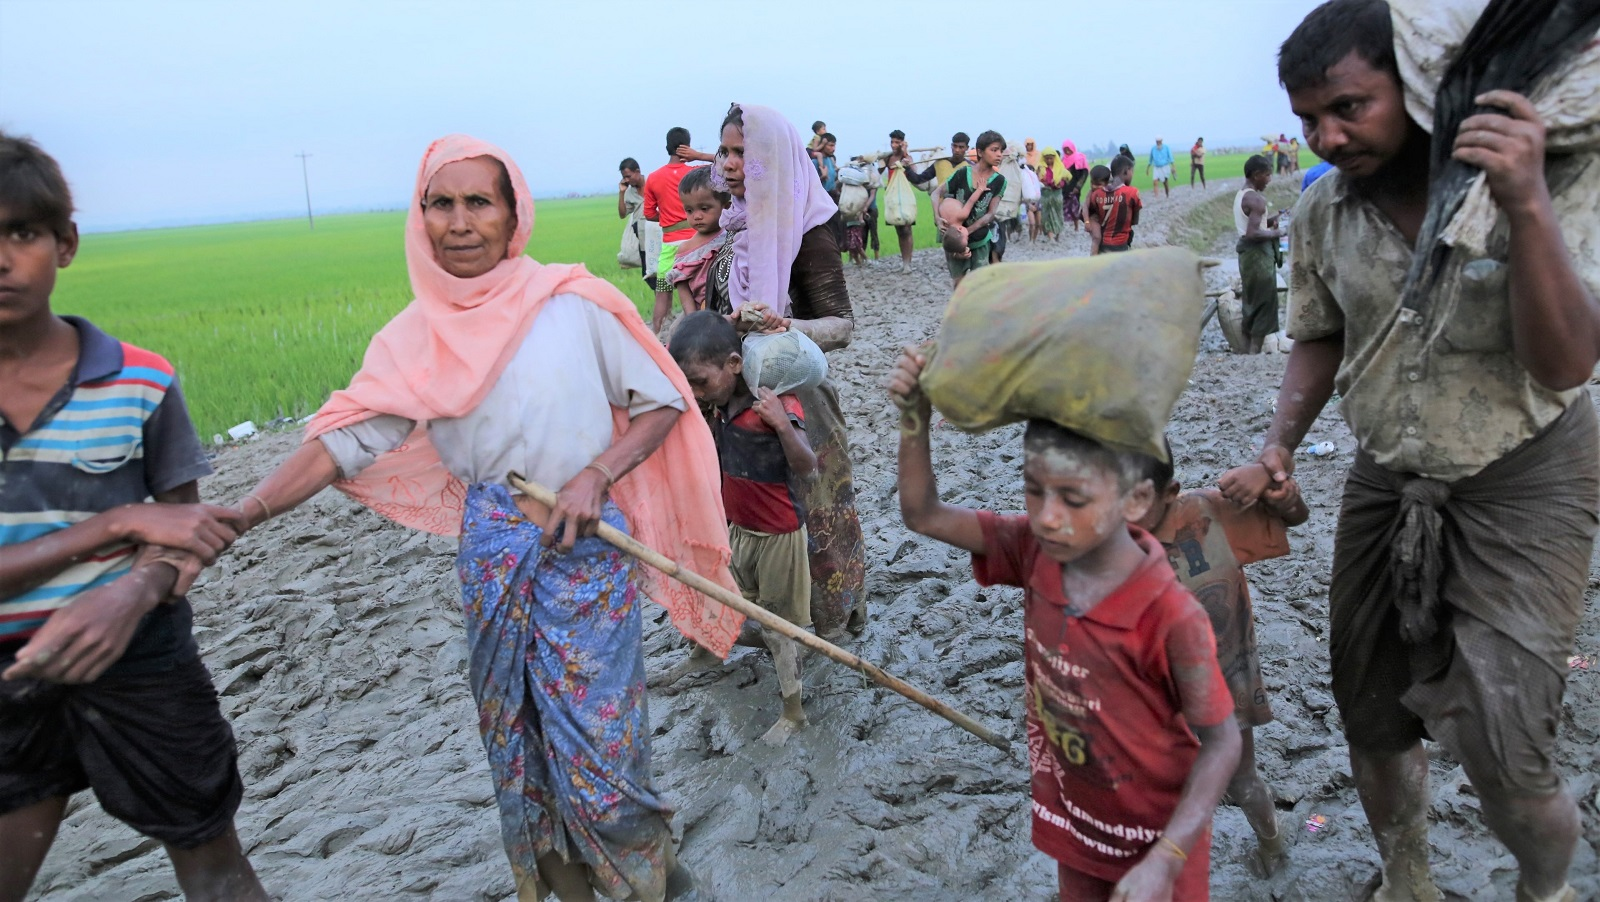 Rohingya refugees from Rakhine state in Myanmar near Teknaf in Bangladesh on Sunday. (Photo: Zakir Hossain Chowdhury/Getty Images)